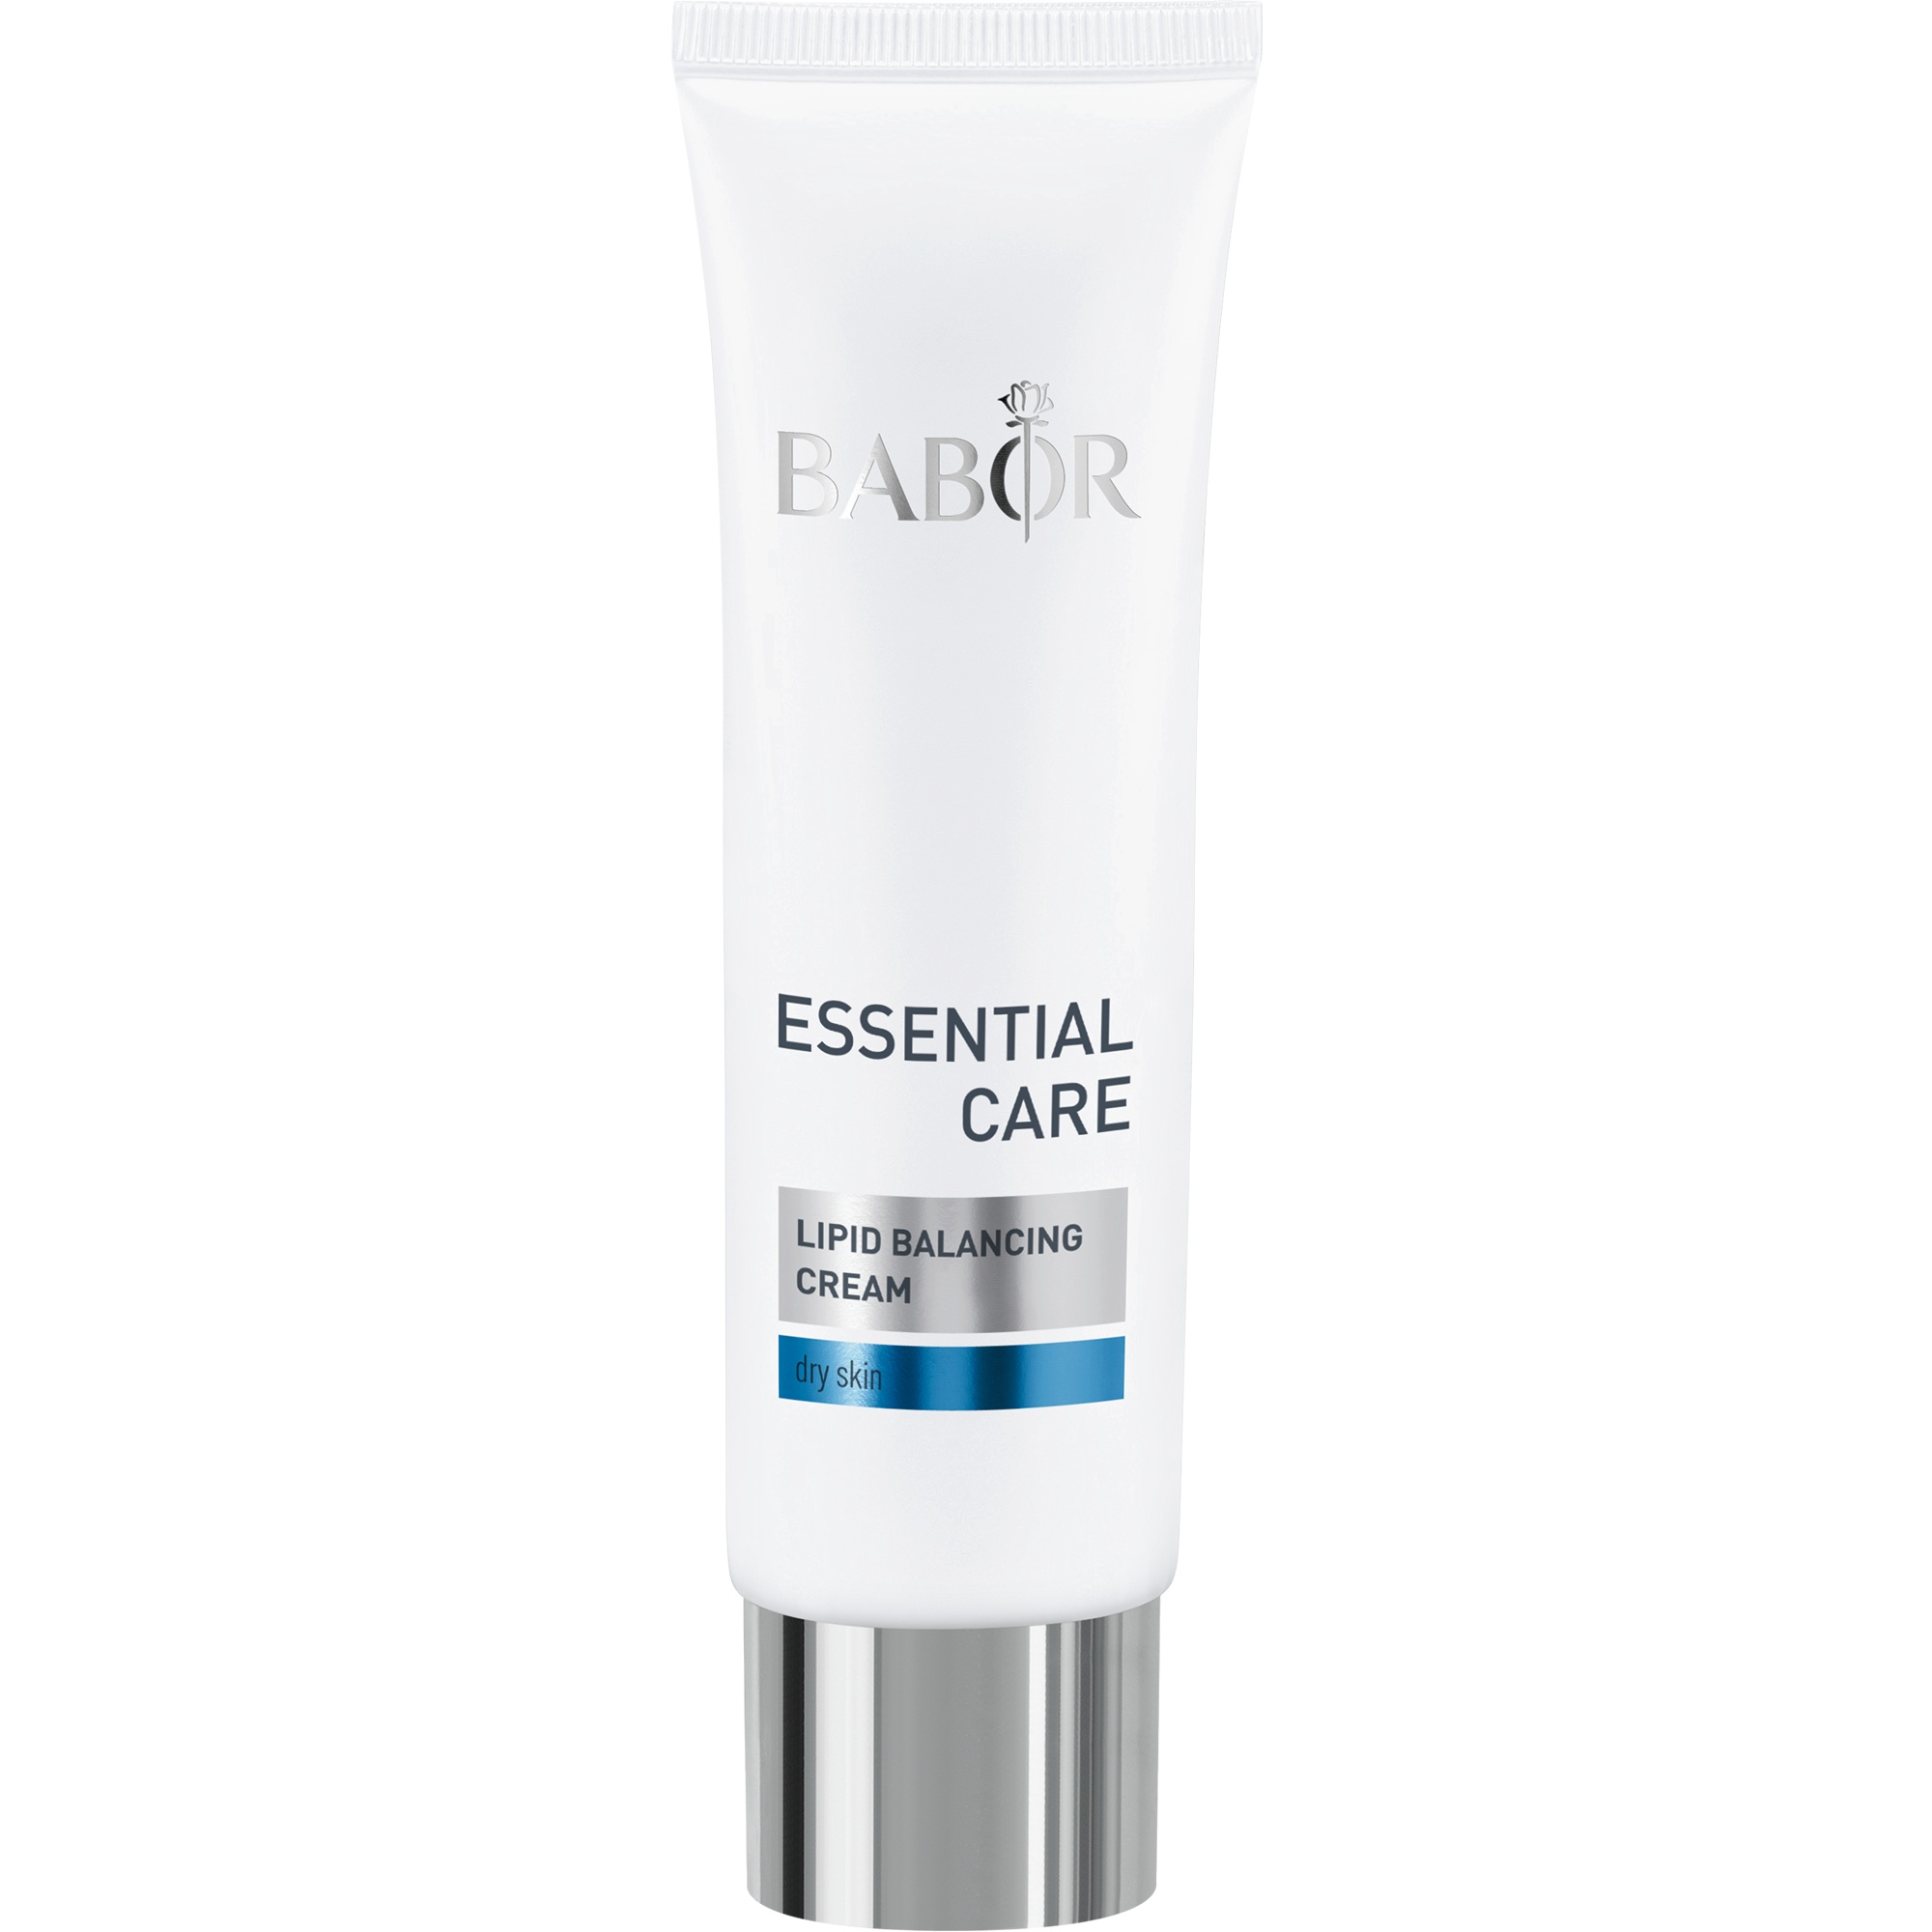 Essential Care Lipid Balancing Care Dry Skin